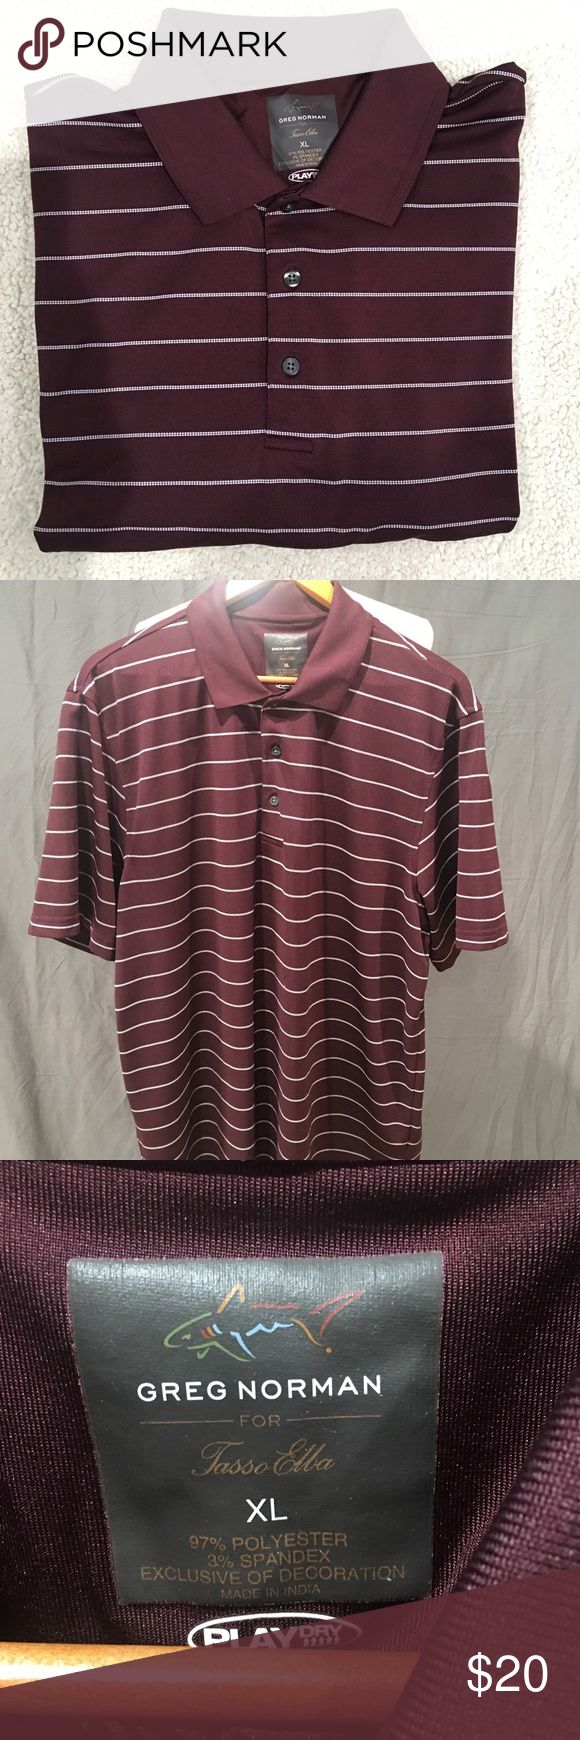 Greg Norman for Tasso Elba Golf Polo Shirt Excellent condition Greg Norman for Tasso Elba Play Dry golf polo shirt. Great maroon color with white horizontal pinstripes. Moisture wicking, breathable, and UPF sun protection. Size XL Greg Norman Shirts Polos